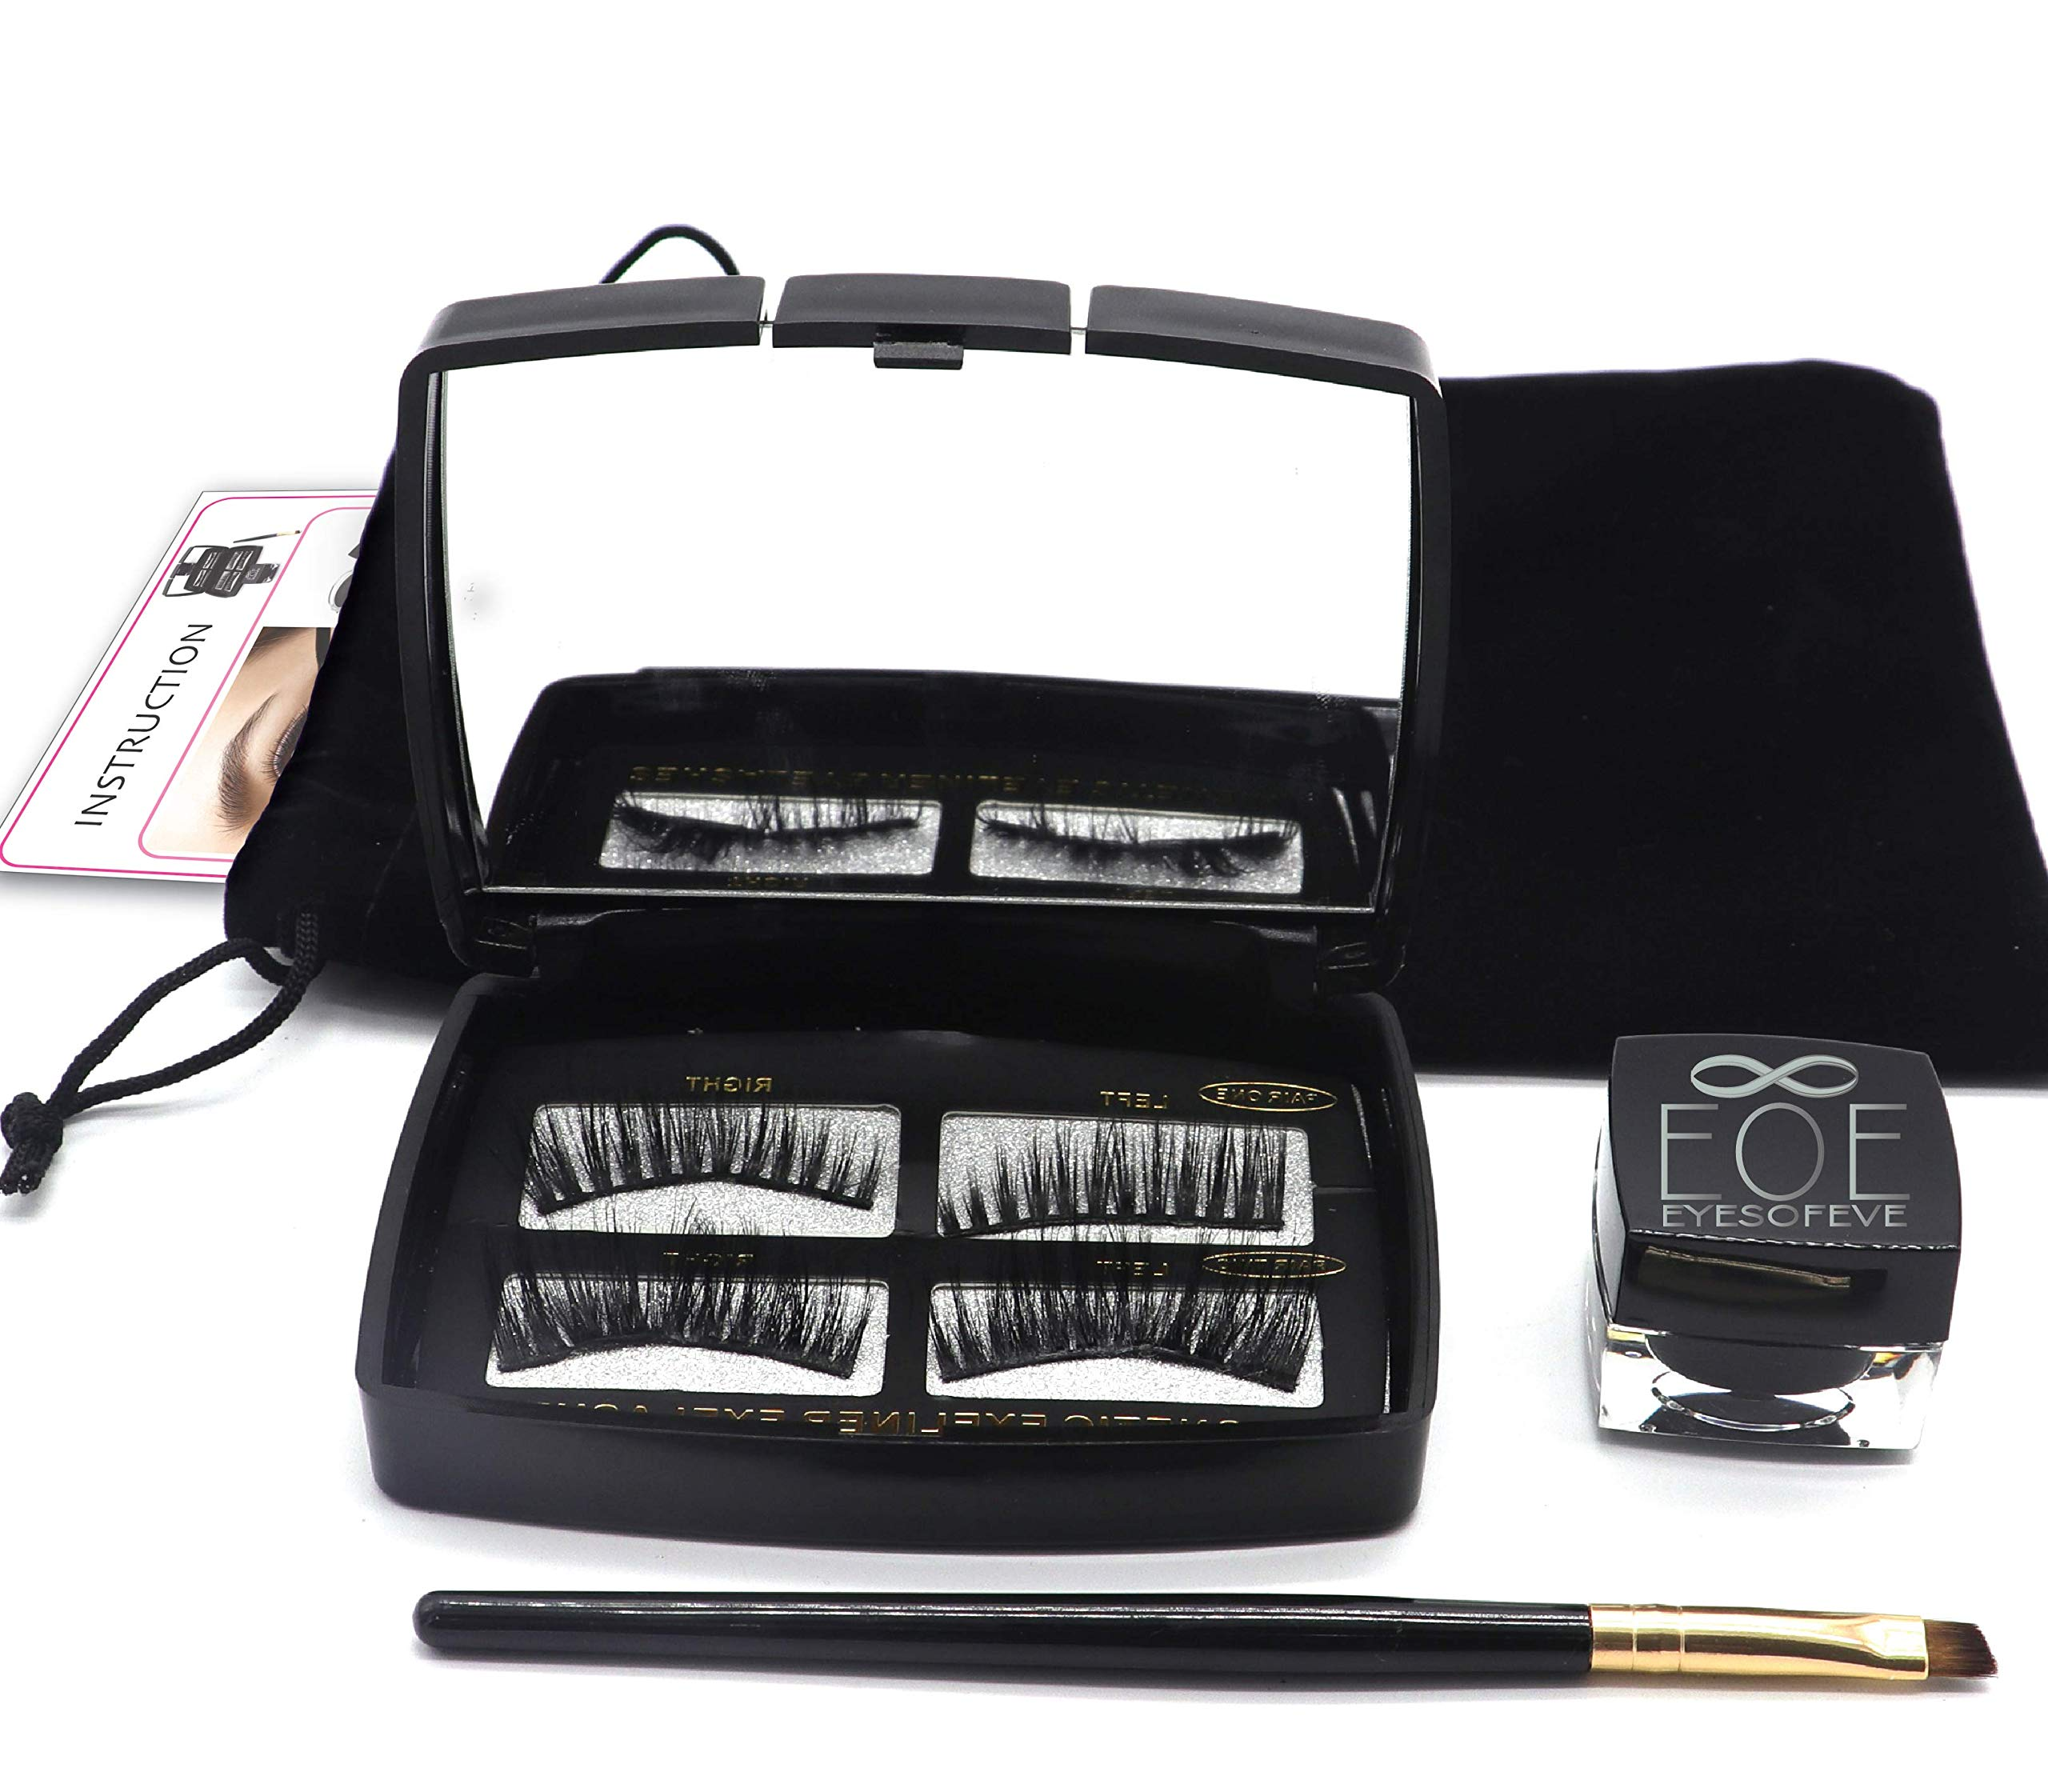 Magnetic Eyelashes Magnetic Eyeliner Gel 2019 LashLiner kit with Brush and Mirror. Lashes are natural looking, no glue reusable eyelashes Easy application